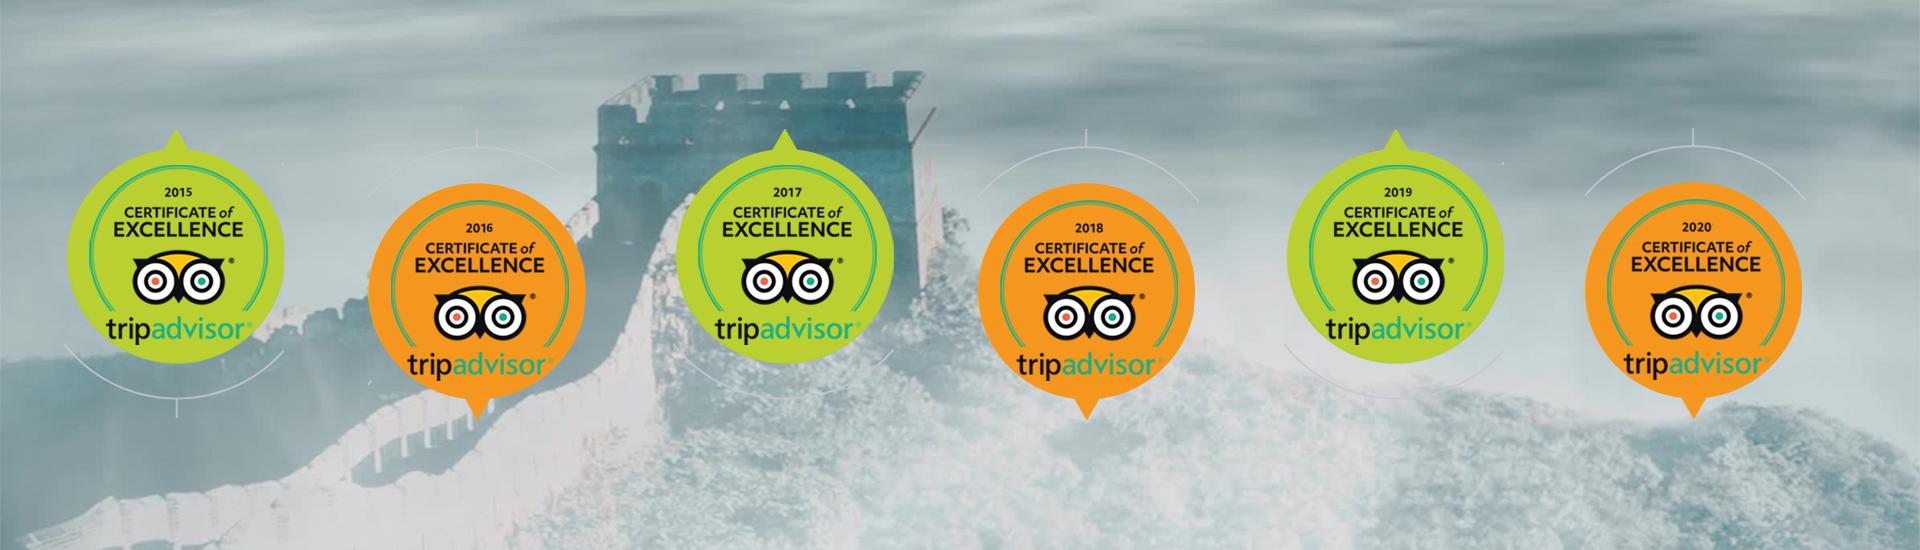 Reviews about China Discovery on TripAdvisor